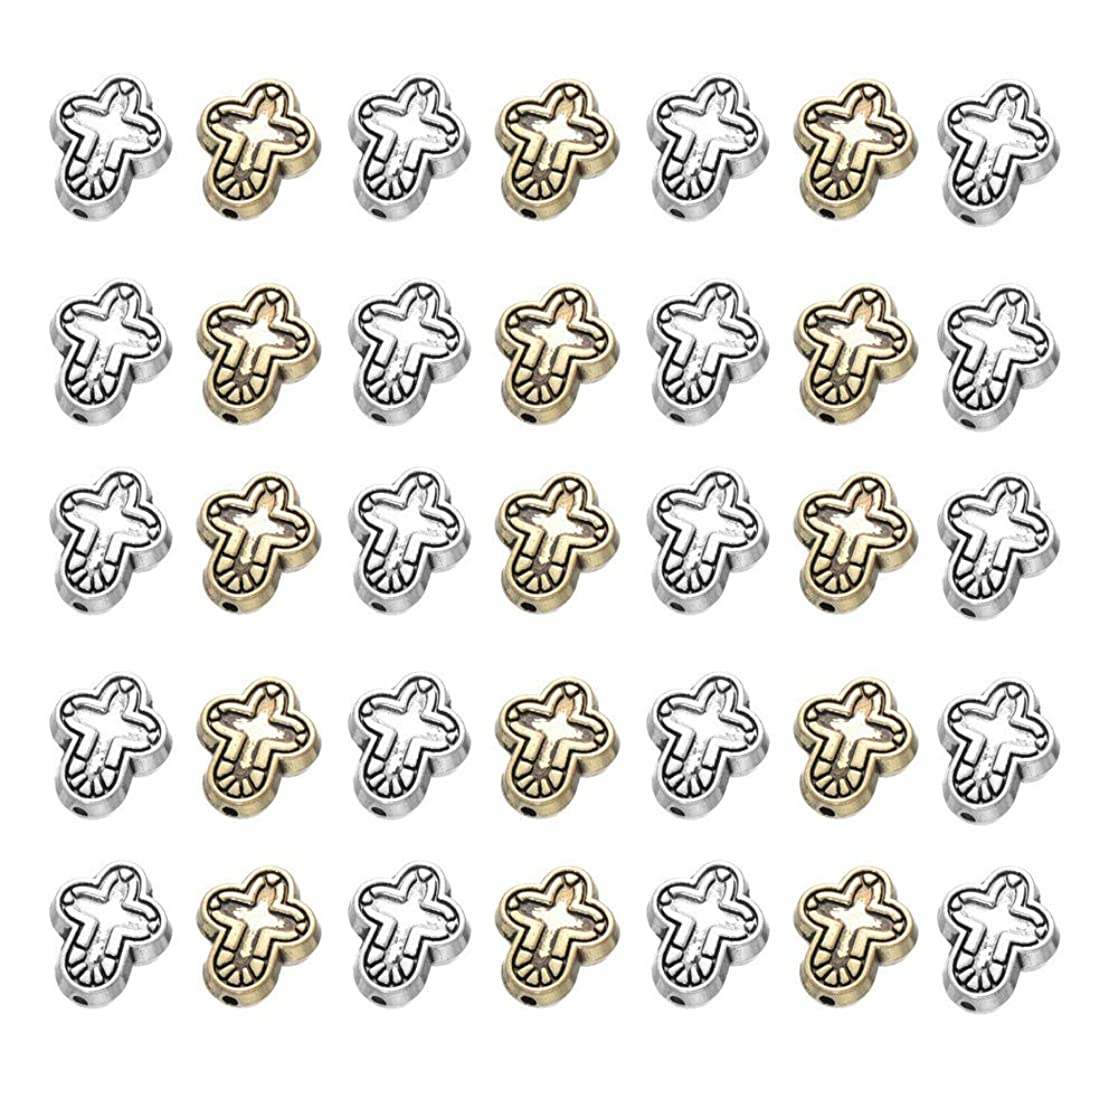 Mystart 100 Pieces Alloy Bracelets Cross Loose Beads Necklace Pendants Charms DIY Jewelry Accessories